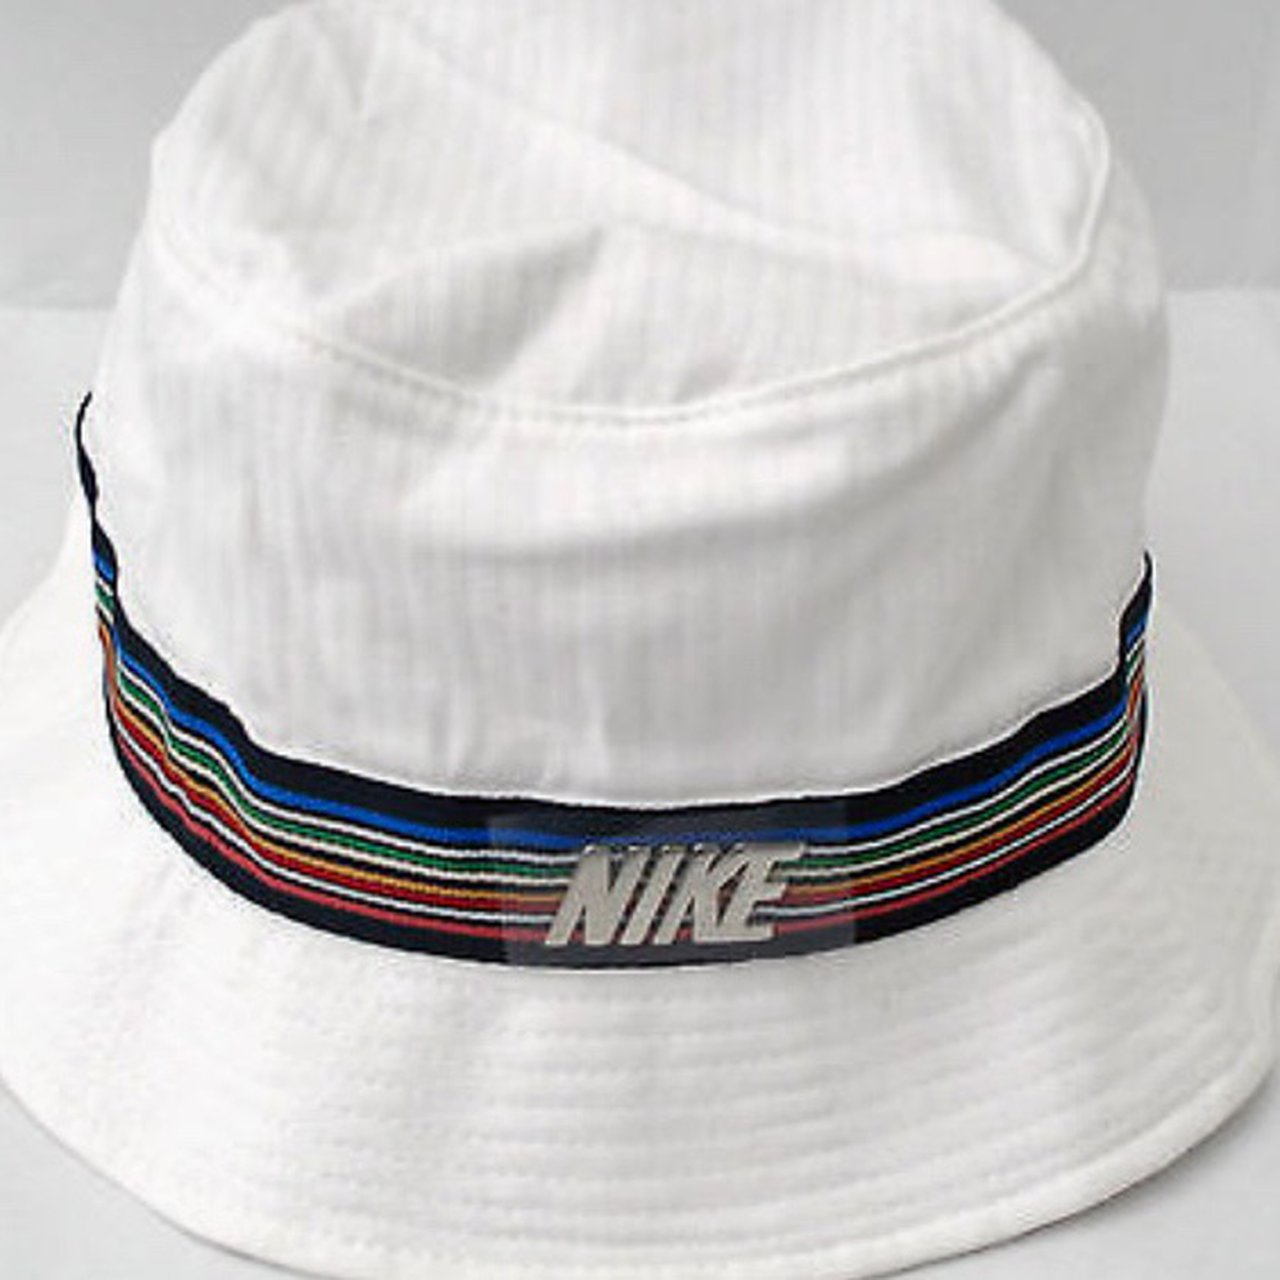 WHITE NIKE Y2K bucket hat with rainbow detailing embroidery - Depop 06699286813